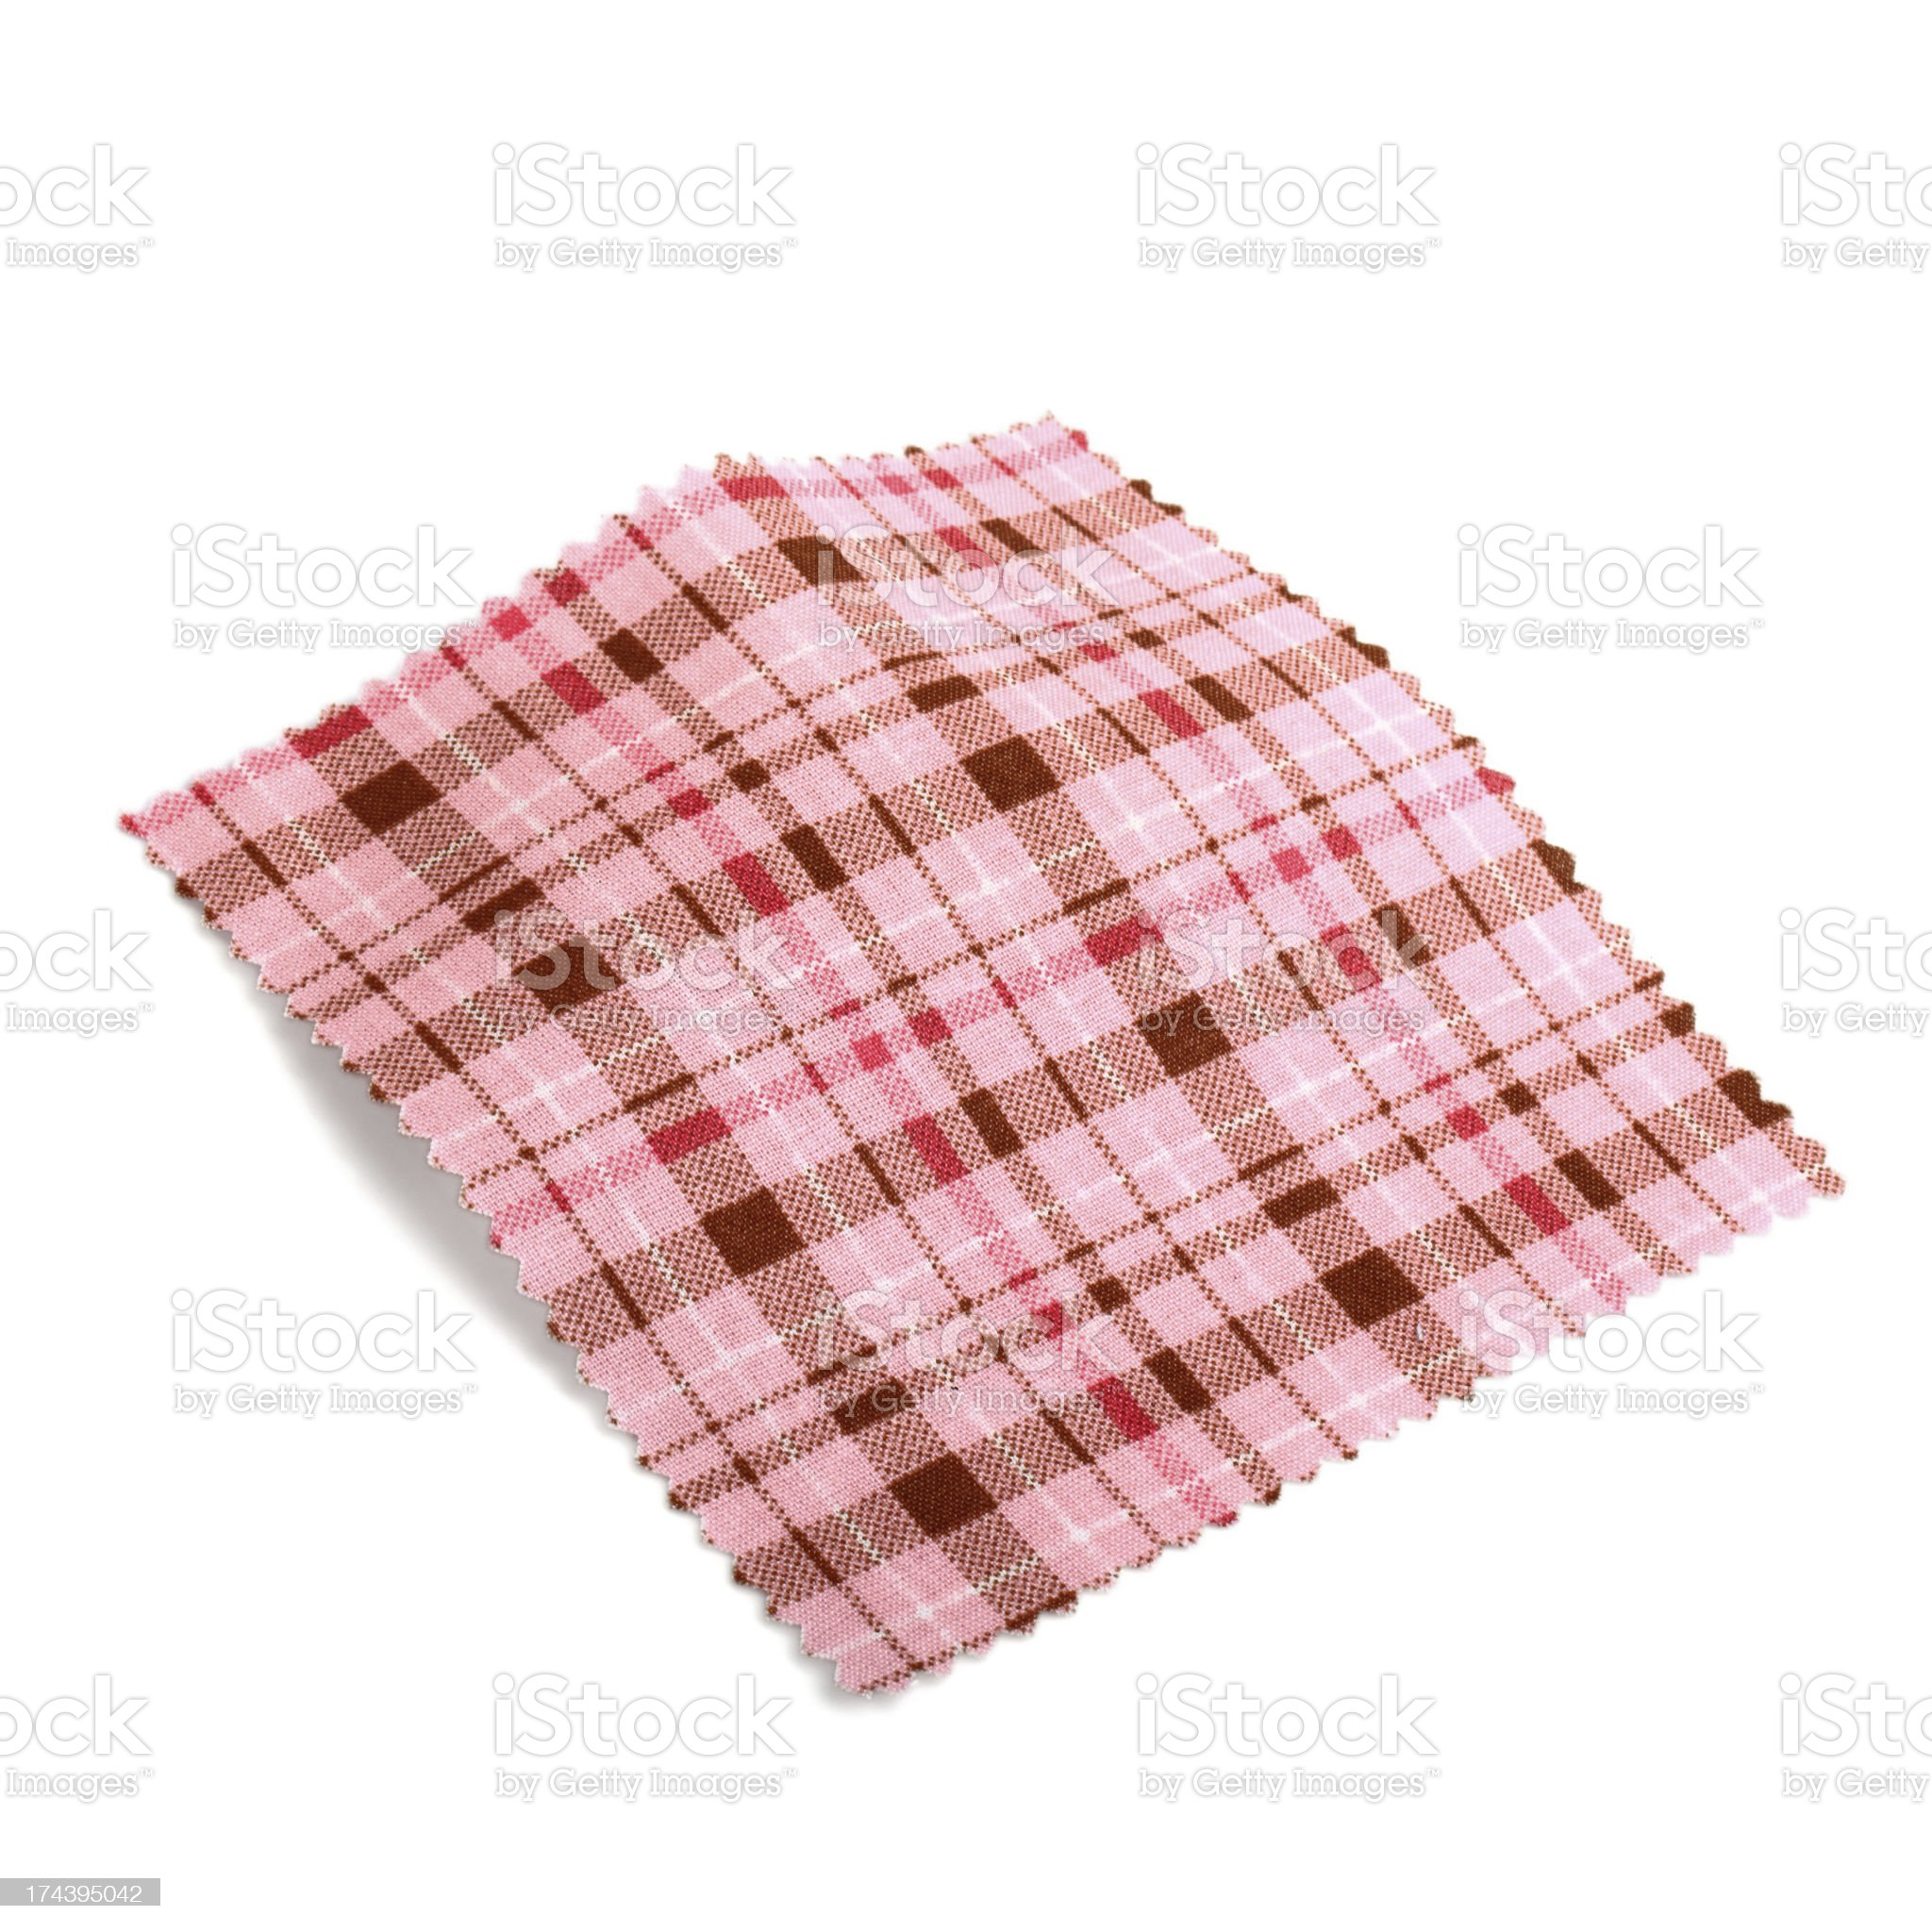 Pink Plaid Pattern Fabric Swatch royalty-free stock photo